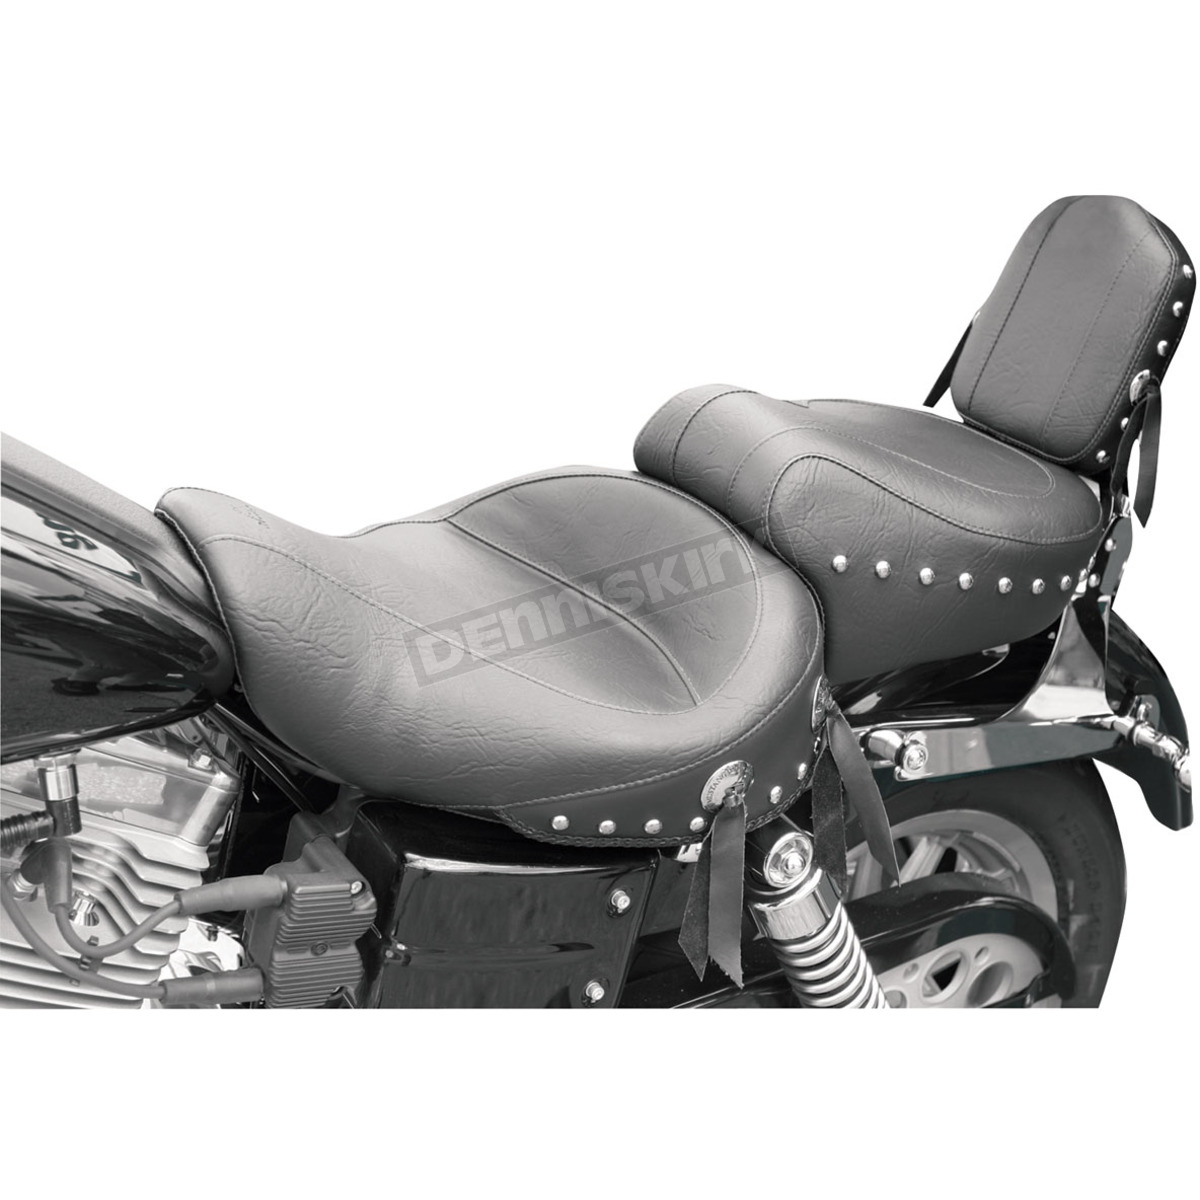 Mustang seats super wide studded touring seat 75435